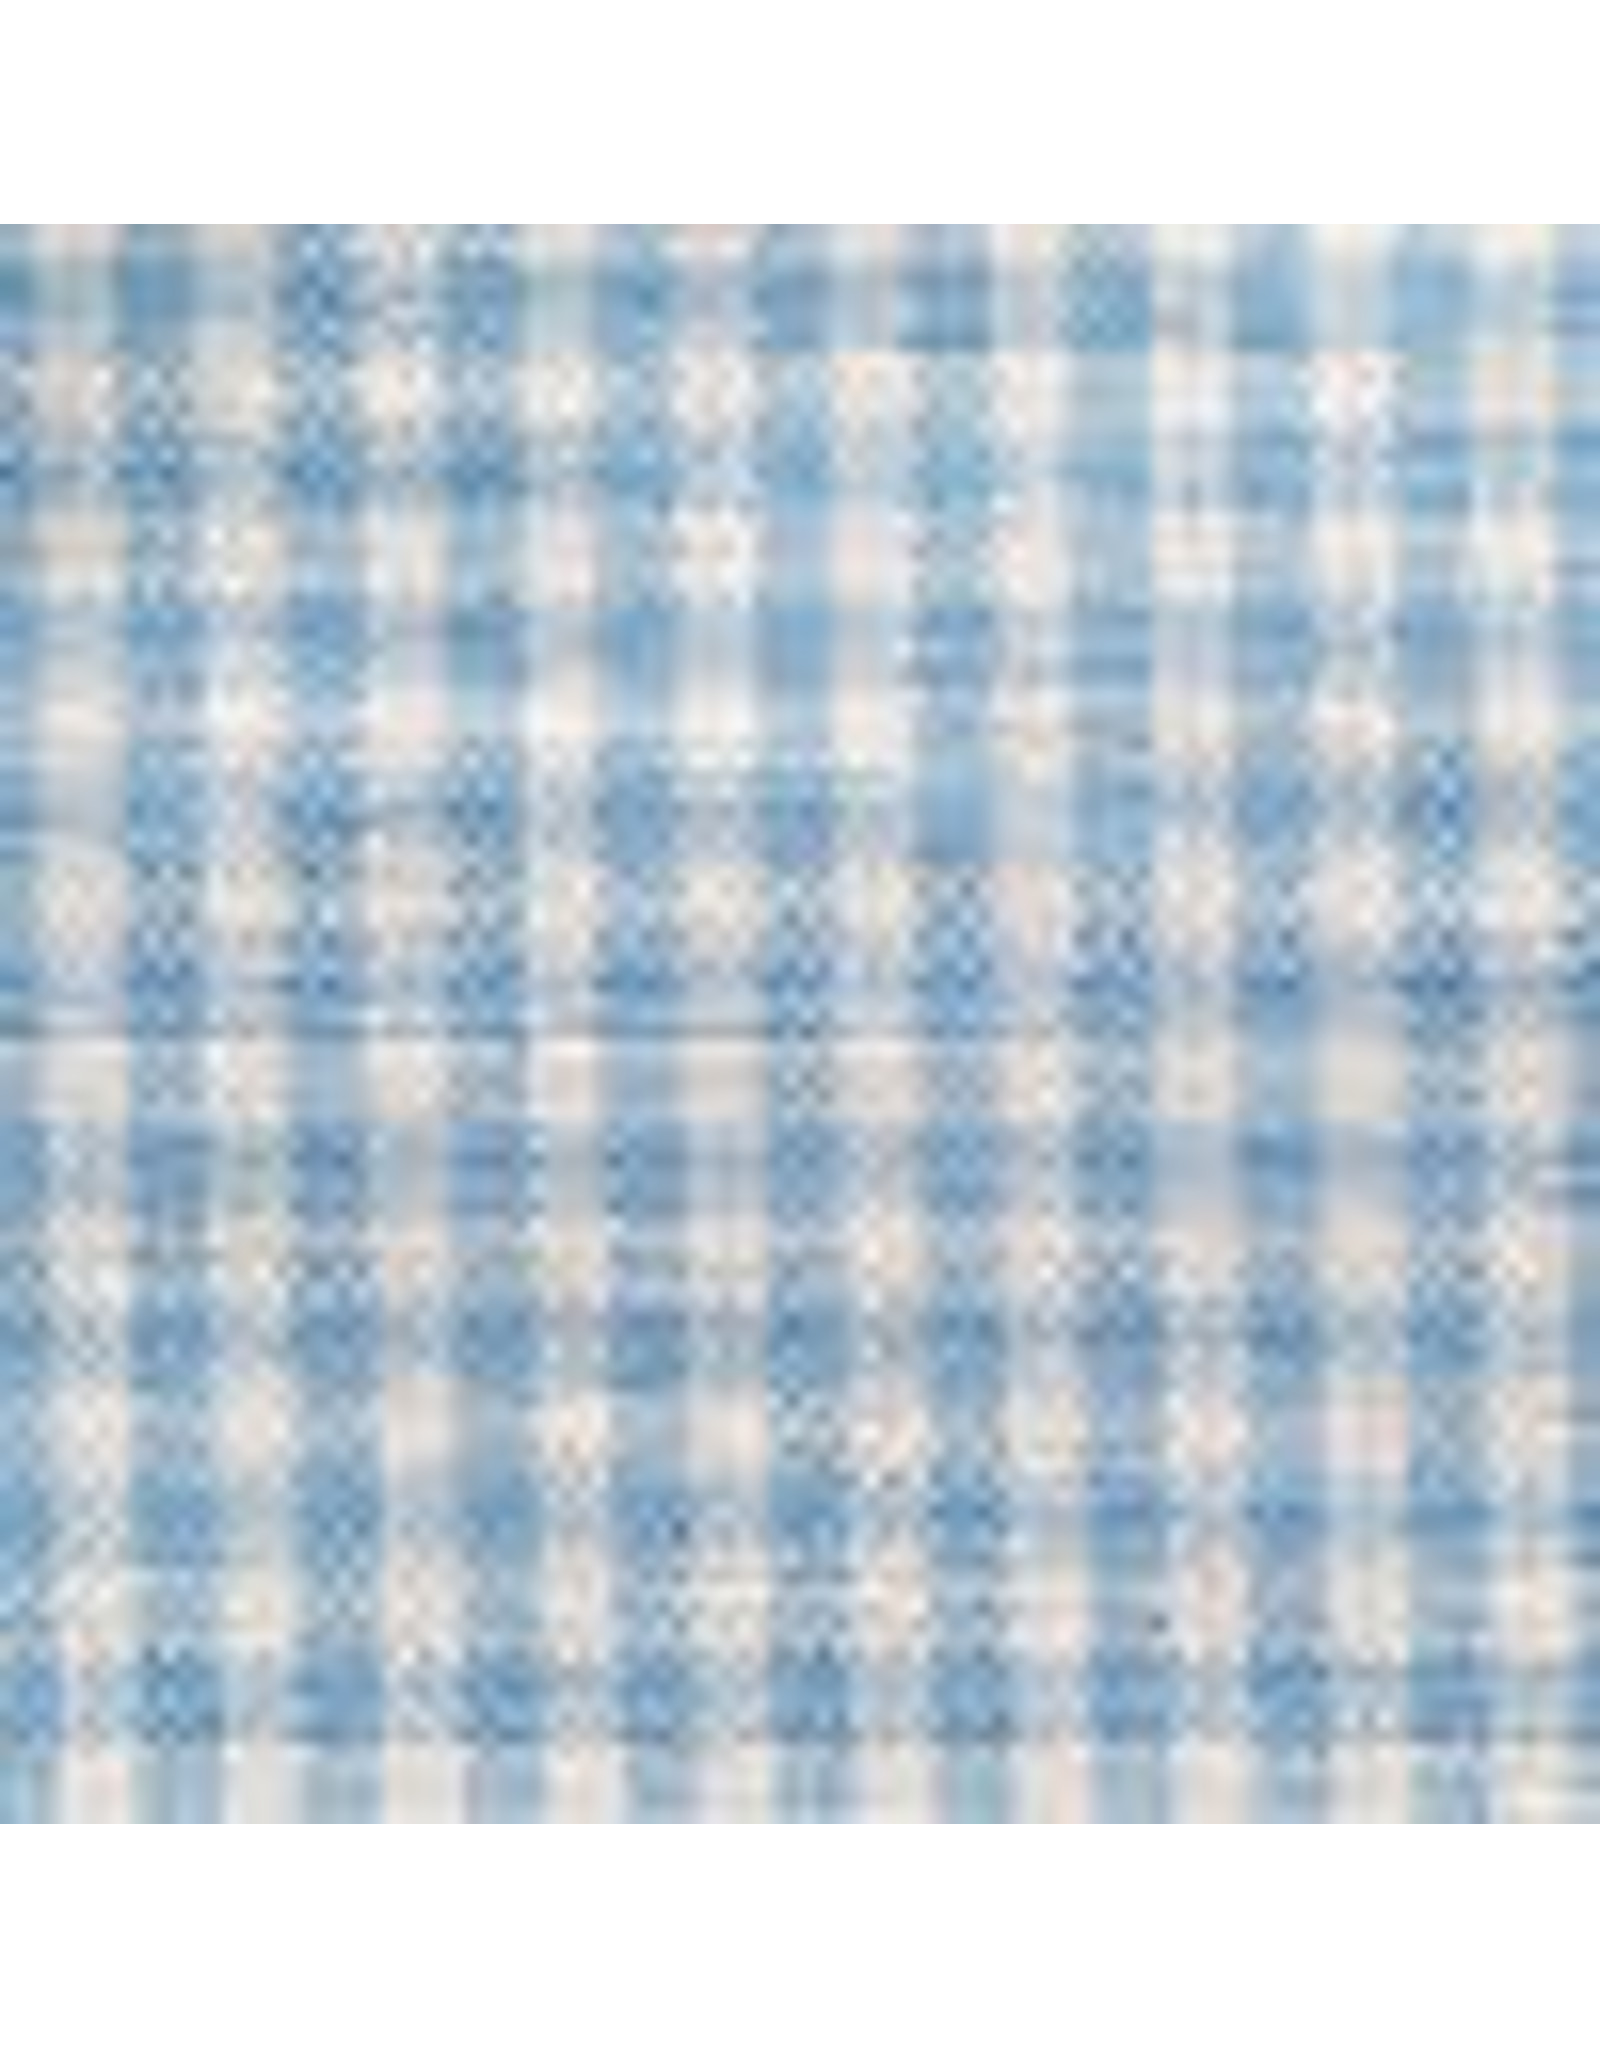 Yd. Blue and White Mini Check Fabric #4203